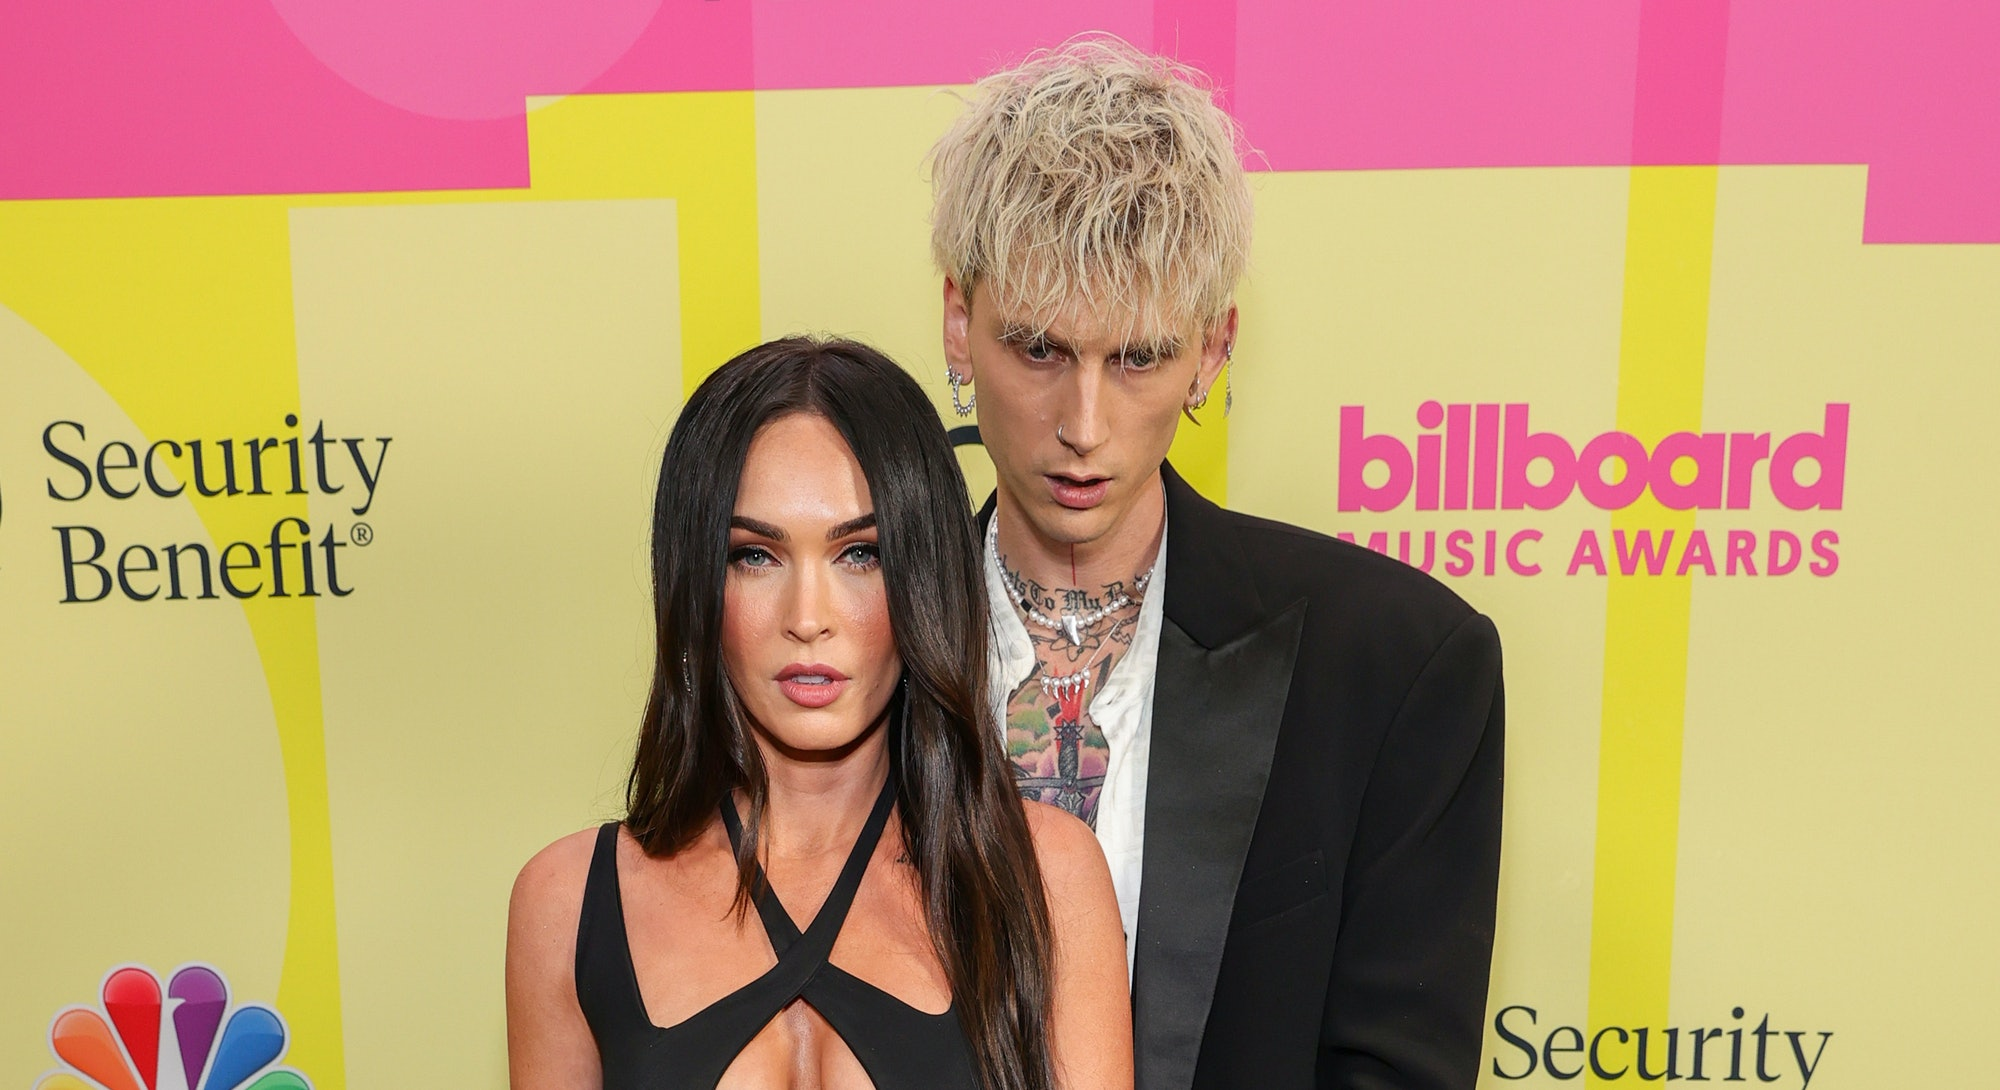 LOS ANGELES, CALIFORNIA - MAY 23: Meghan Fox and Machine Gun Kelly poses backstage for the 2021 Billboard Music Awards, broadcast on May 23, 2021 at Microsoft Theater in Los Angeles, California. (Photo by Rich Fury/Getty Images for dcp)